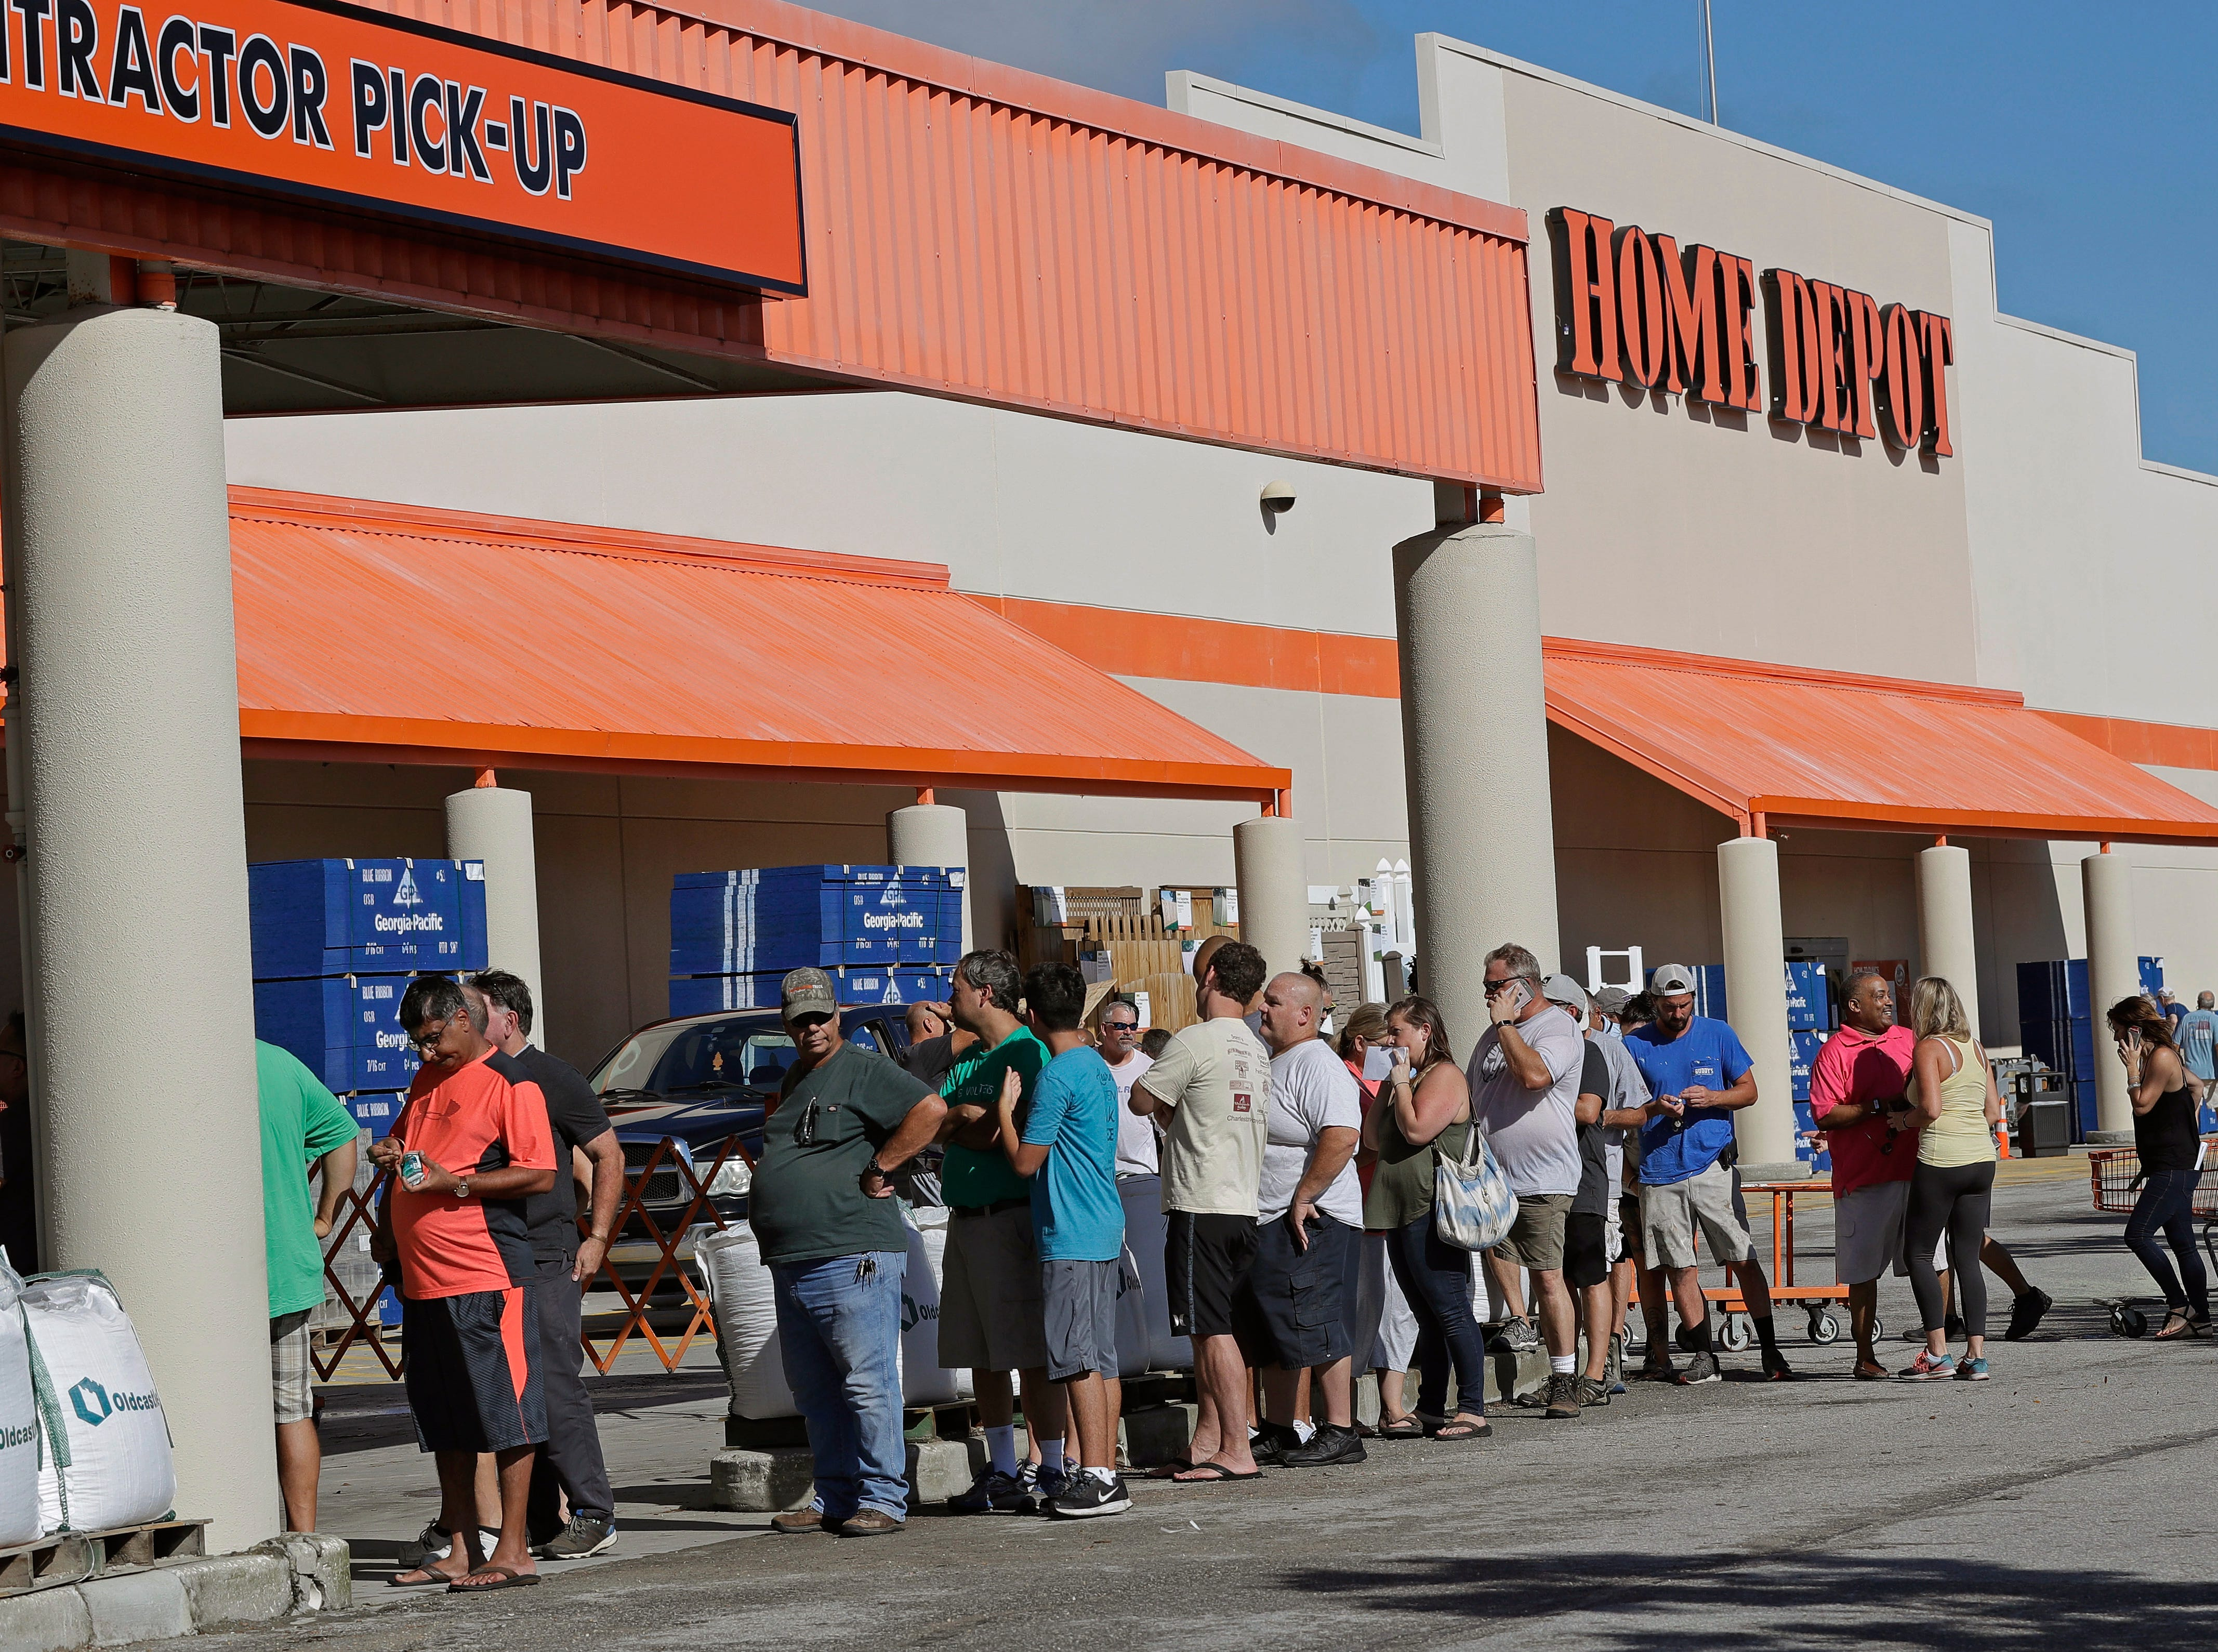 People line up outside a Home Depot for a new supply of generators and plywood in advance of Hurricane Florence in Wilmington, N.C., Wednesday, Sept. 12, 2018. Florence exploded into a potentially catastrophic hurricane Monday as it closed in on North and South Carolina, carrying winds up to 140 mph (220 kph) and water that could wreak havoc over a wide stretch of the eastern United States later this week.